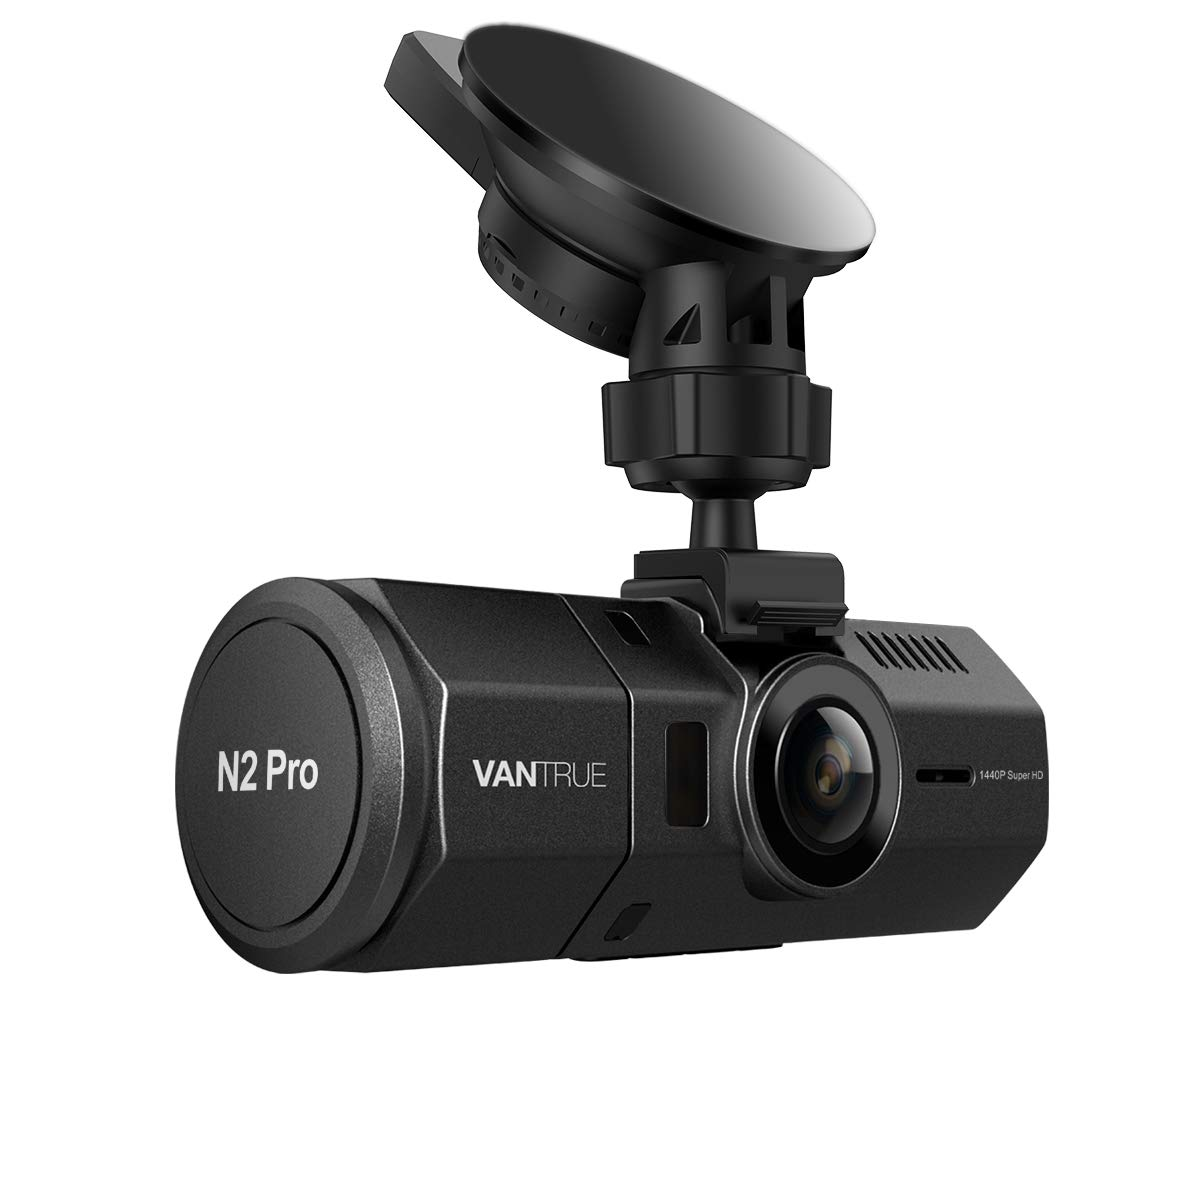 Vantrue N2 Pro Uber Dual Dash Cam Infrared Night Vision Dual 1920x1080P Front and Inside Dash Camera (2.5K 2560x1440P Single Front) 1.5'' 310° Car Camera, Parking Mode, Support 256GB max, Sony Sensor